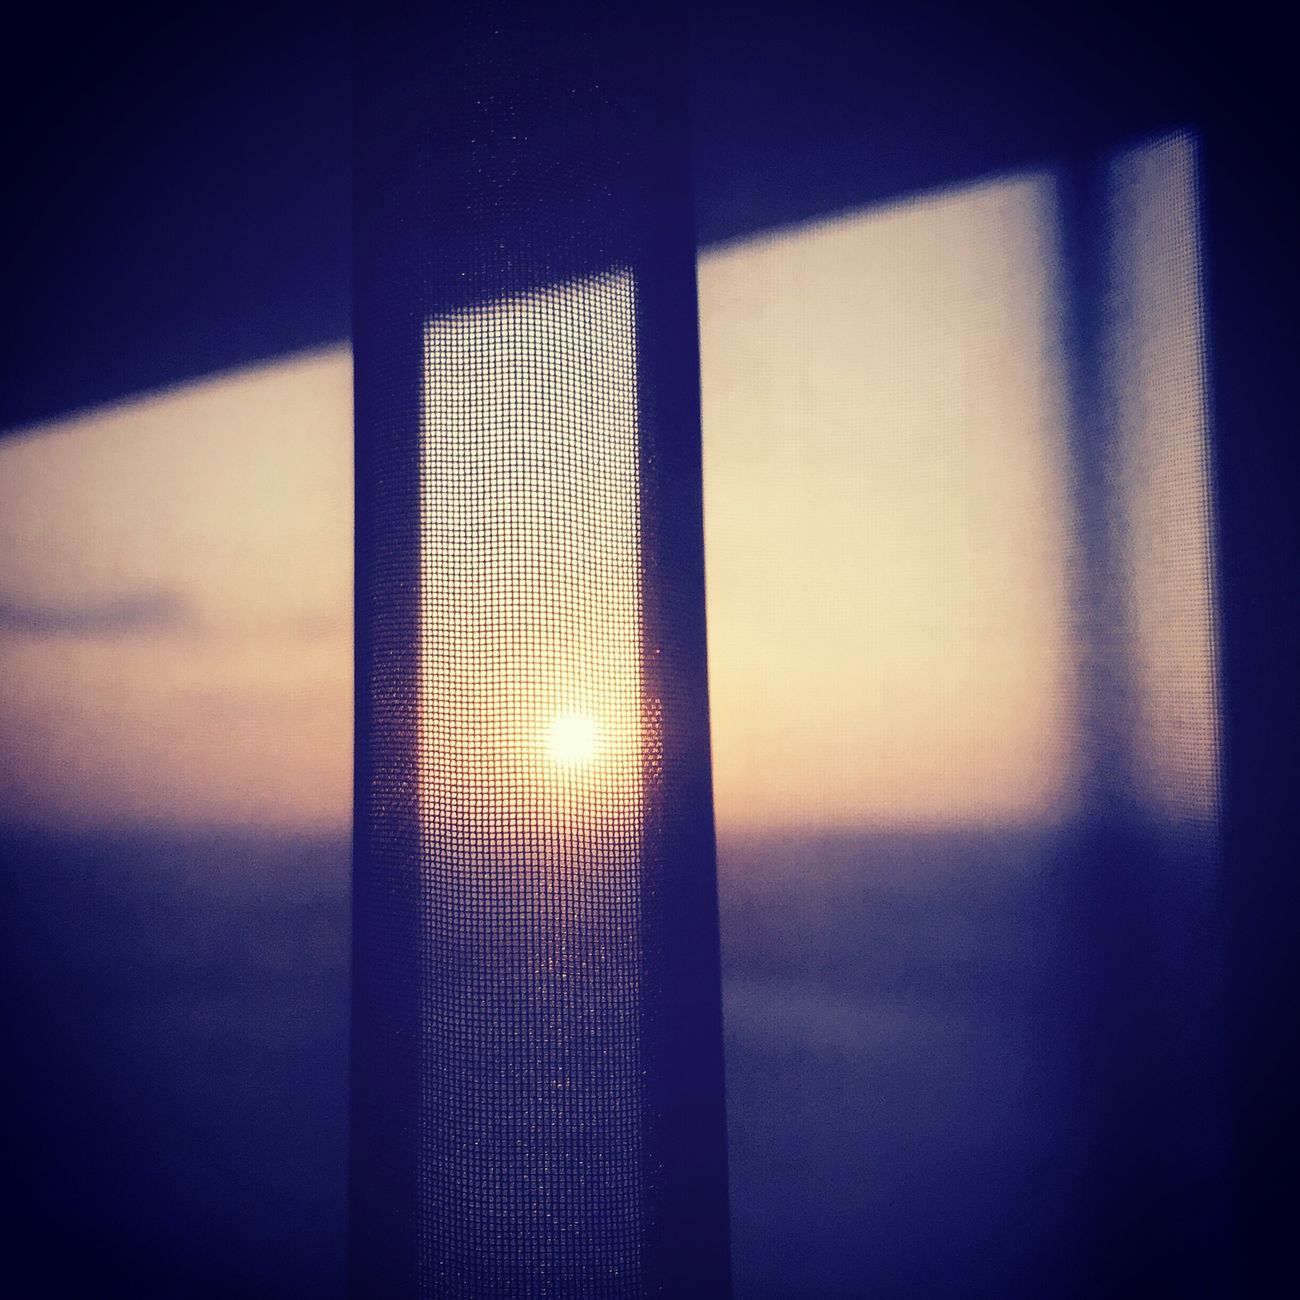 Sunrise Sunrisedubai Sunrisethroughmywindow Dubai Pattern Pieces DubaiMediaCity Tecom Goodmorning :) Waking Up Curtain